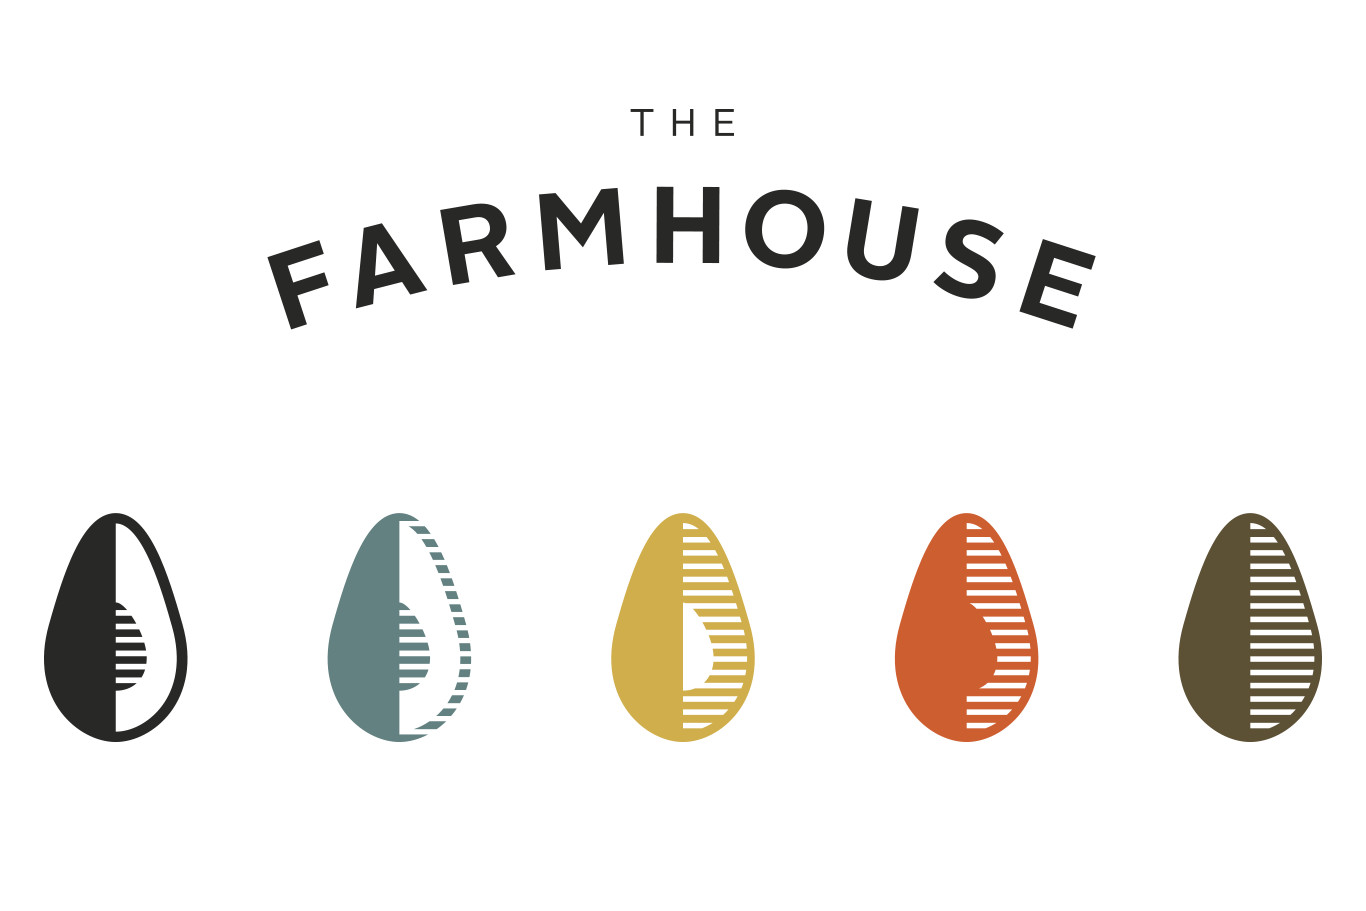 Farmhouse Logomarks